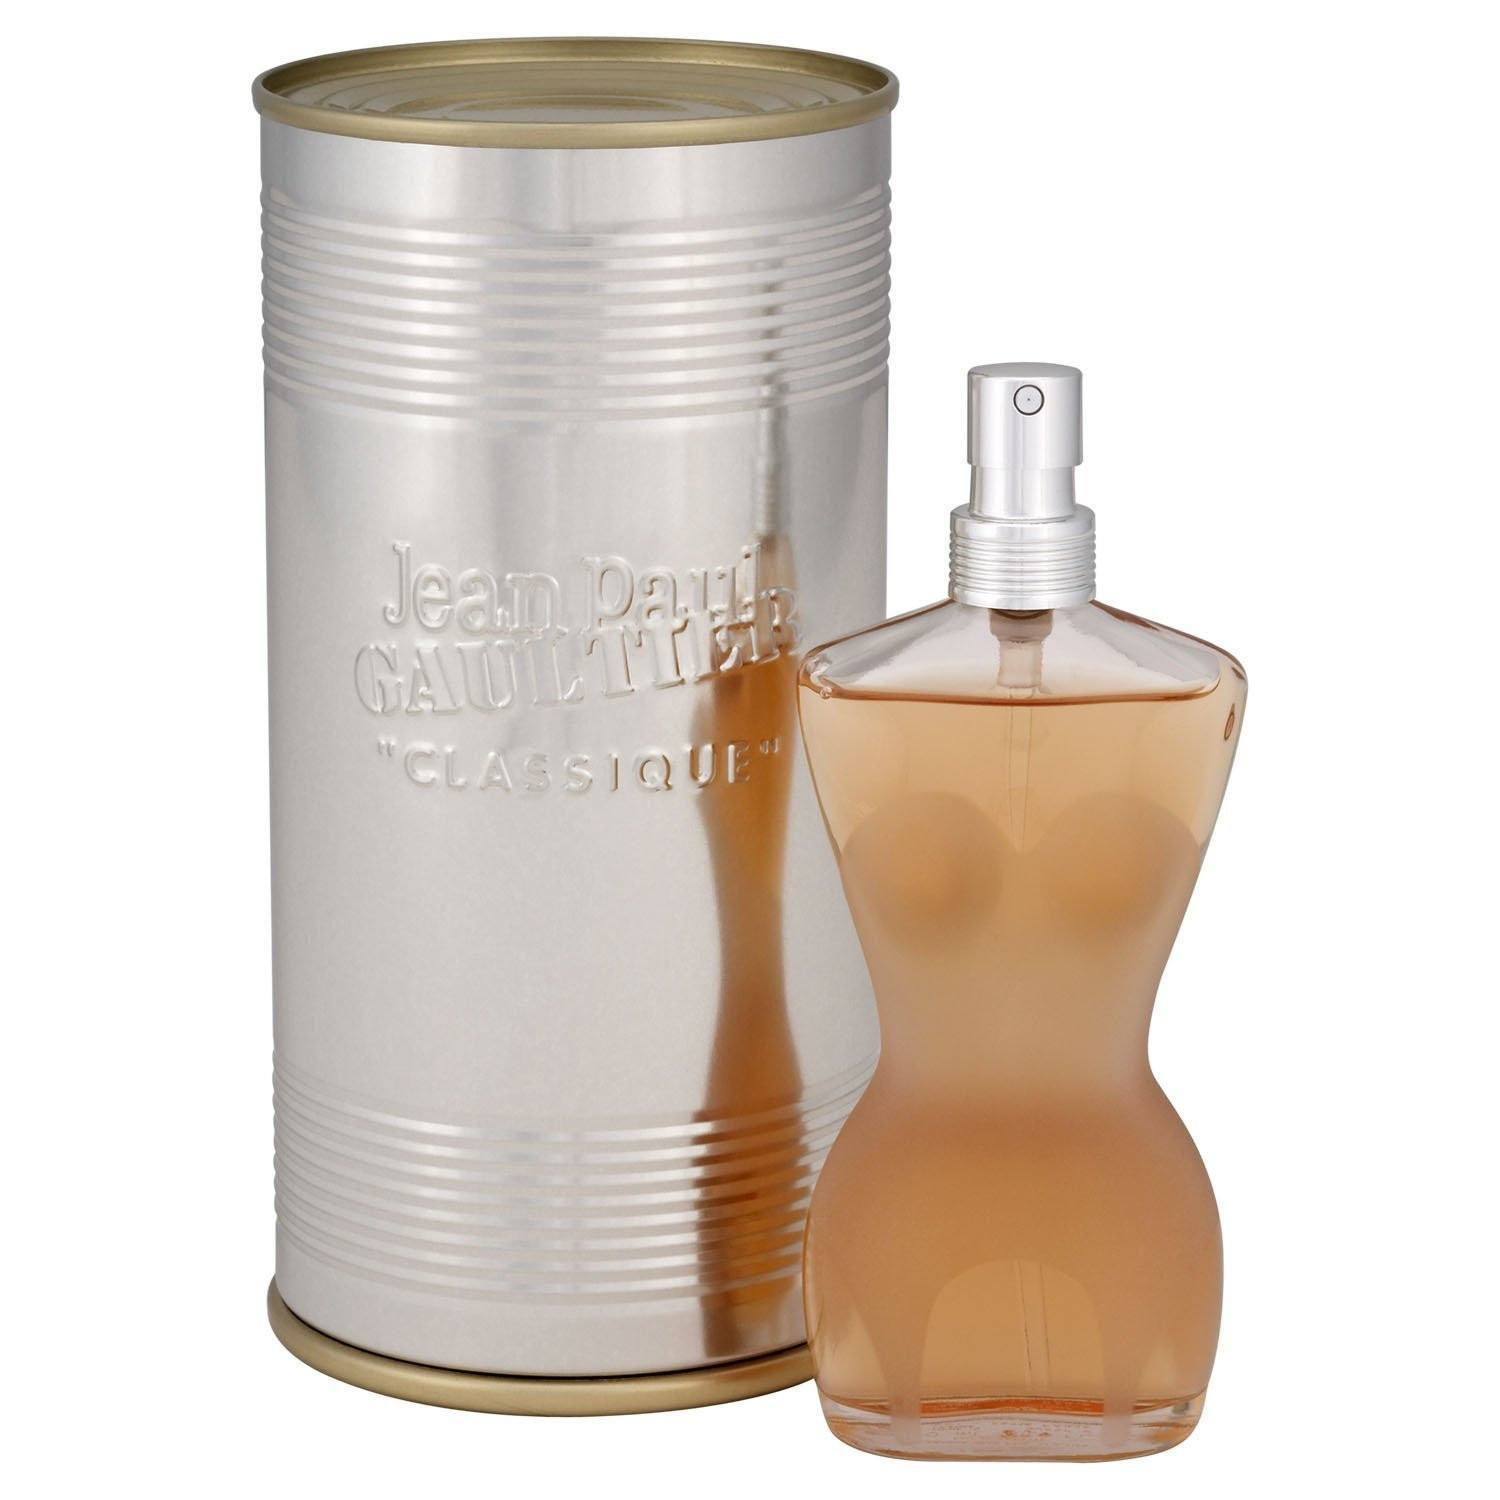 Jean Paul Gaultier 3.4 oz EDT for women - filthyfragrance